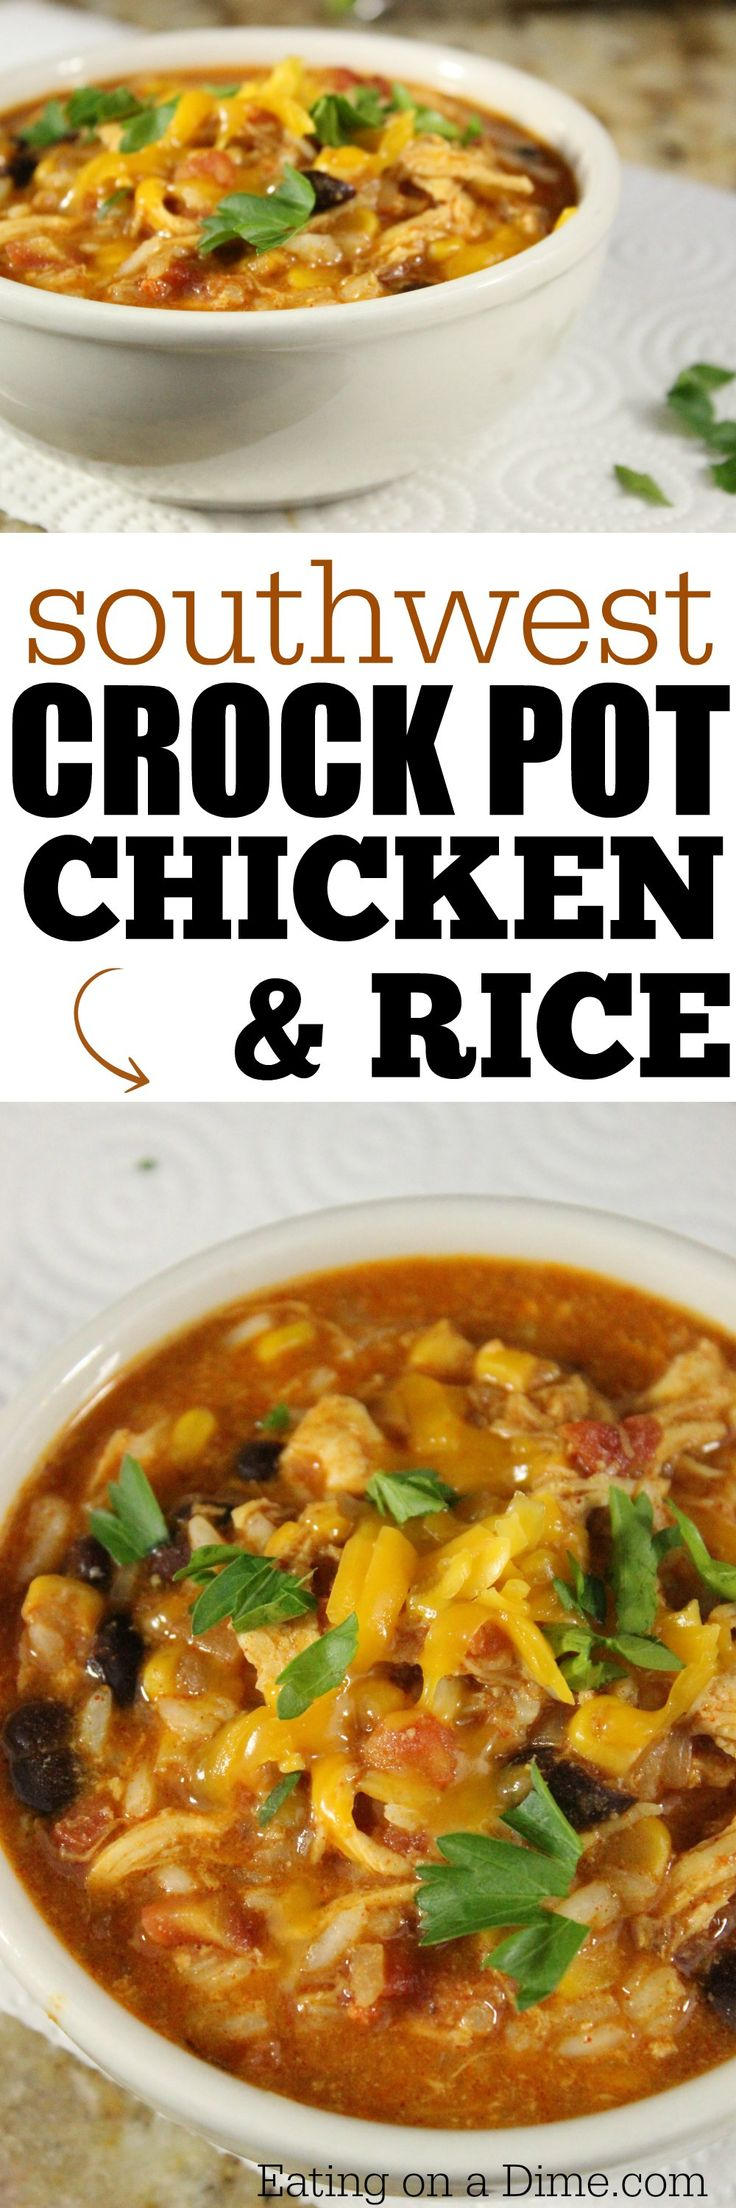 Southwest Crock Pot Chicken and Rice recipe.  I have a delicious and super easy crock pot freezer meal. You are not going to believe how easy this is to make. If your family is anything like mine, this is going to become a go-to meal.